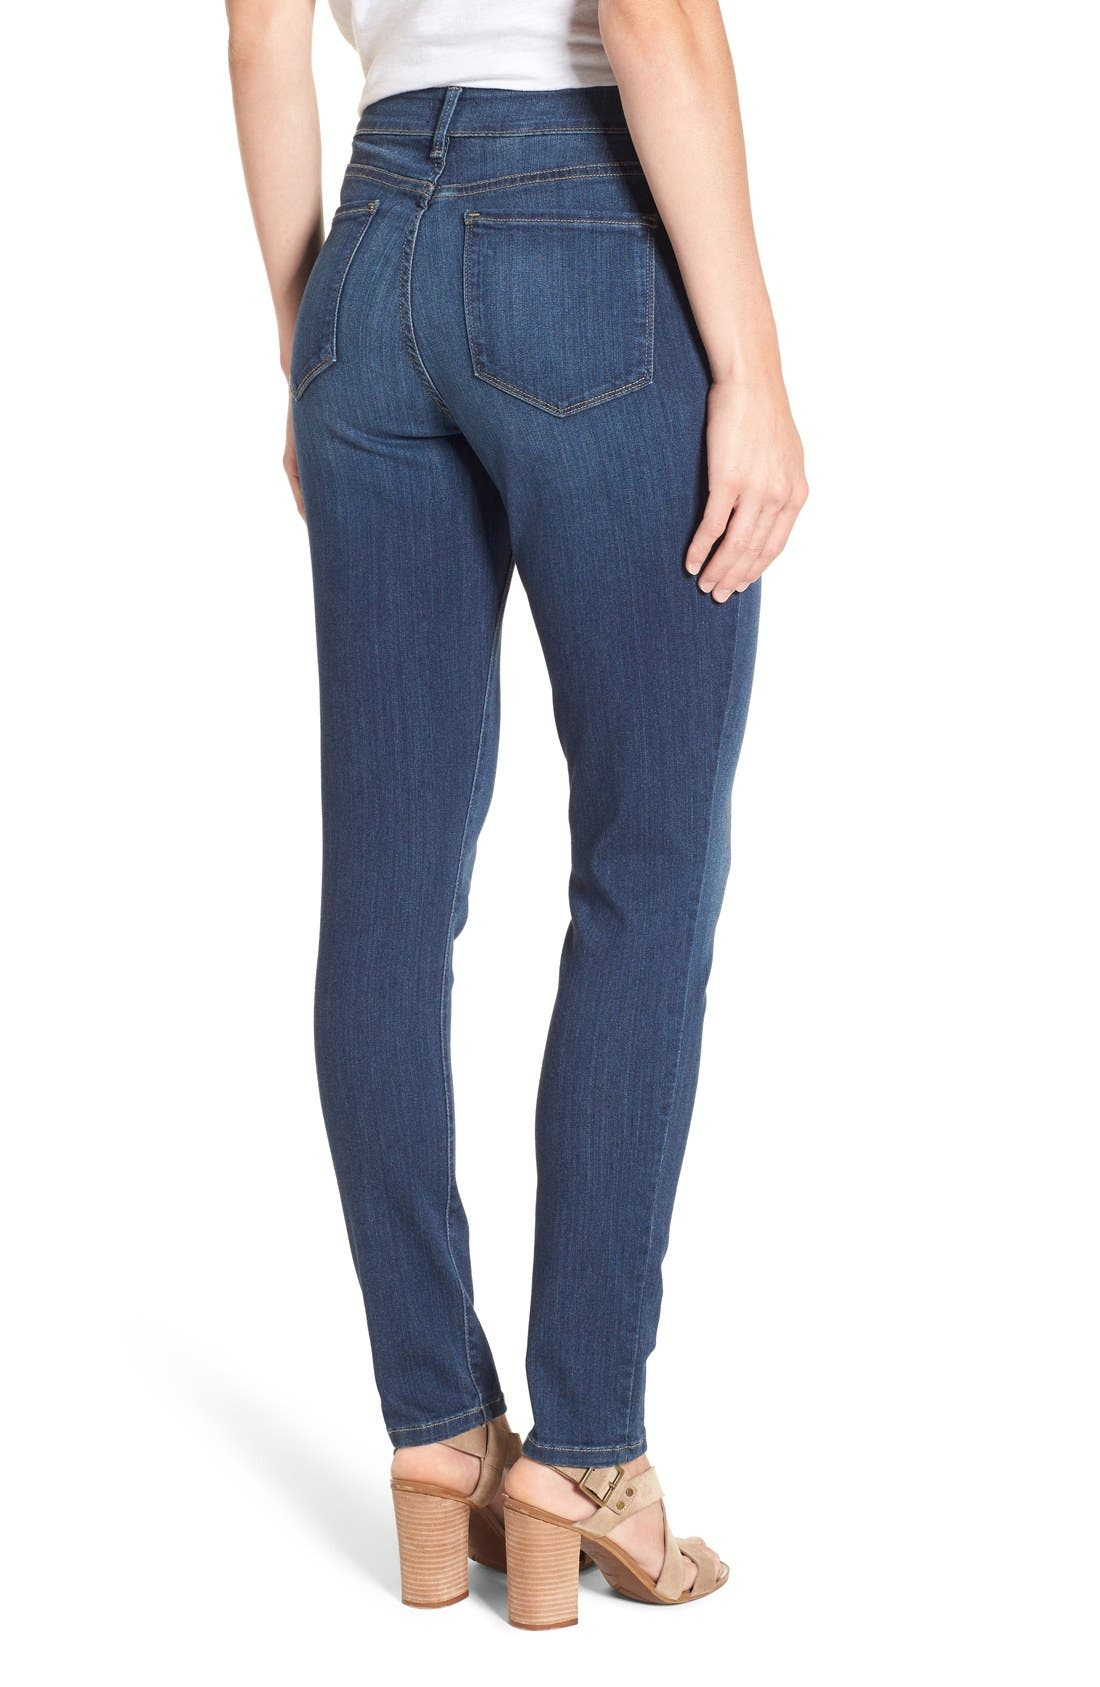 'Ami' Stretch Skinny Jeans,                             Main thumbnail 1, color,                             428